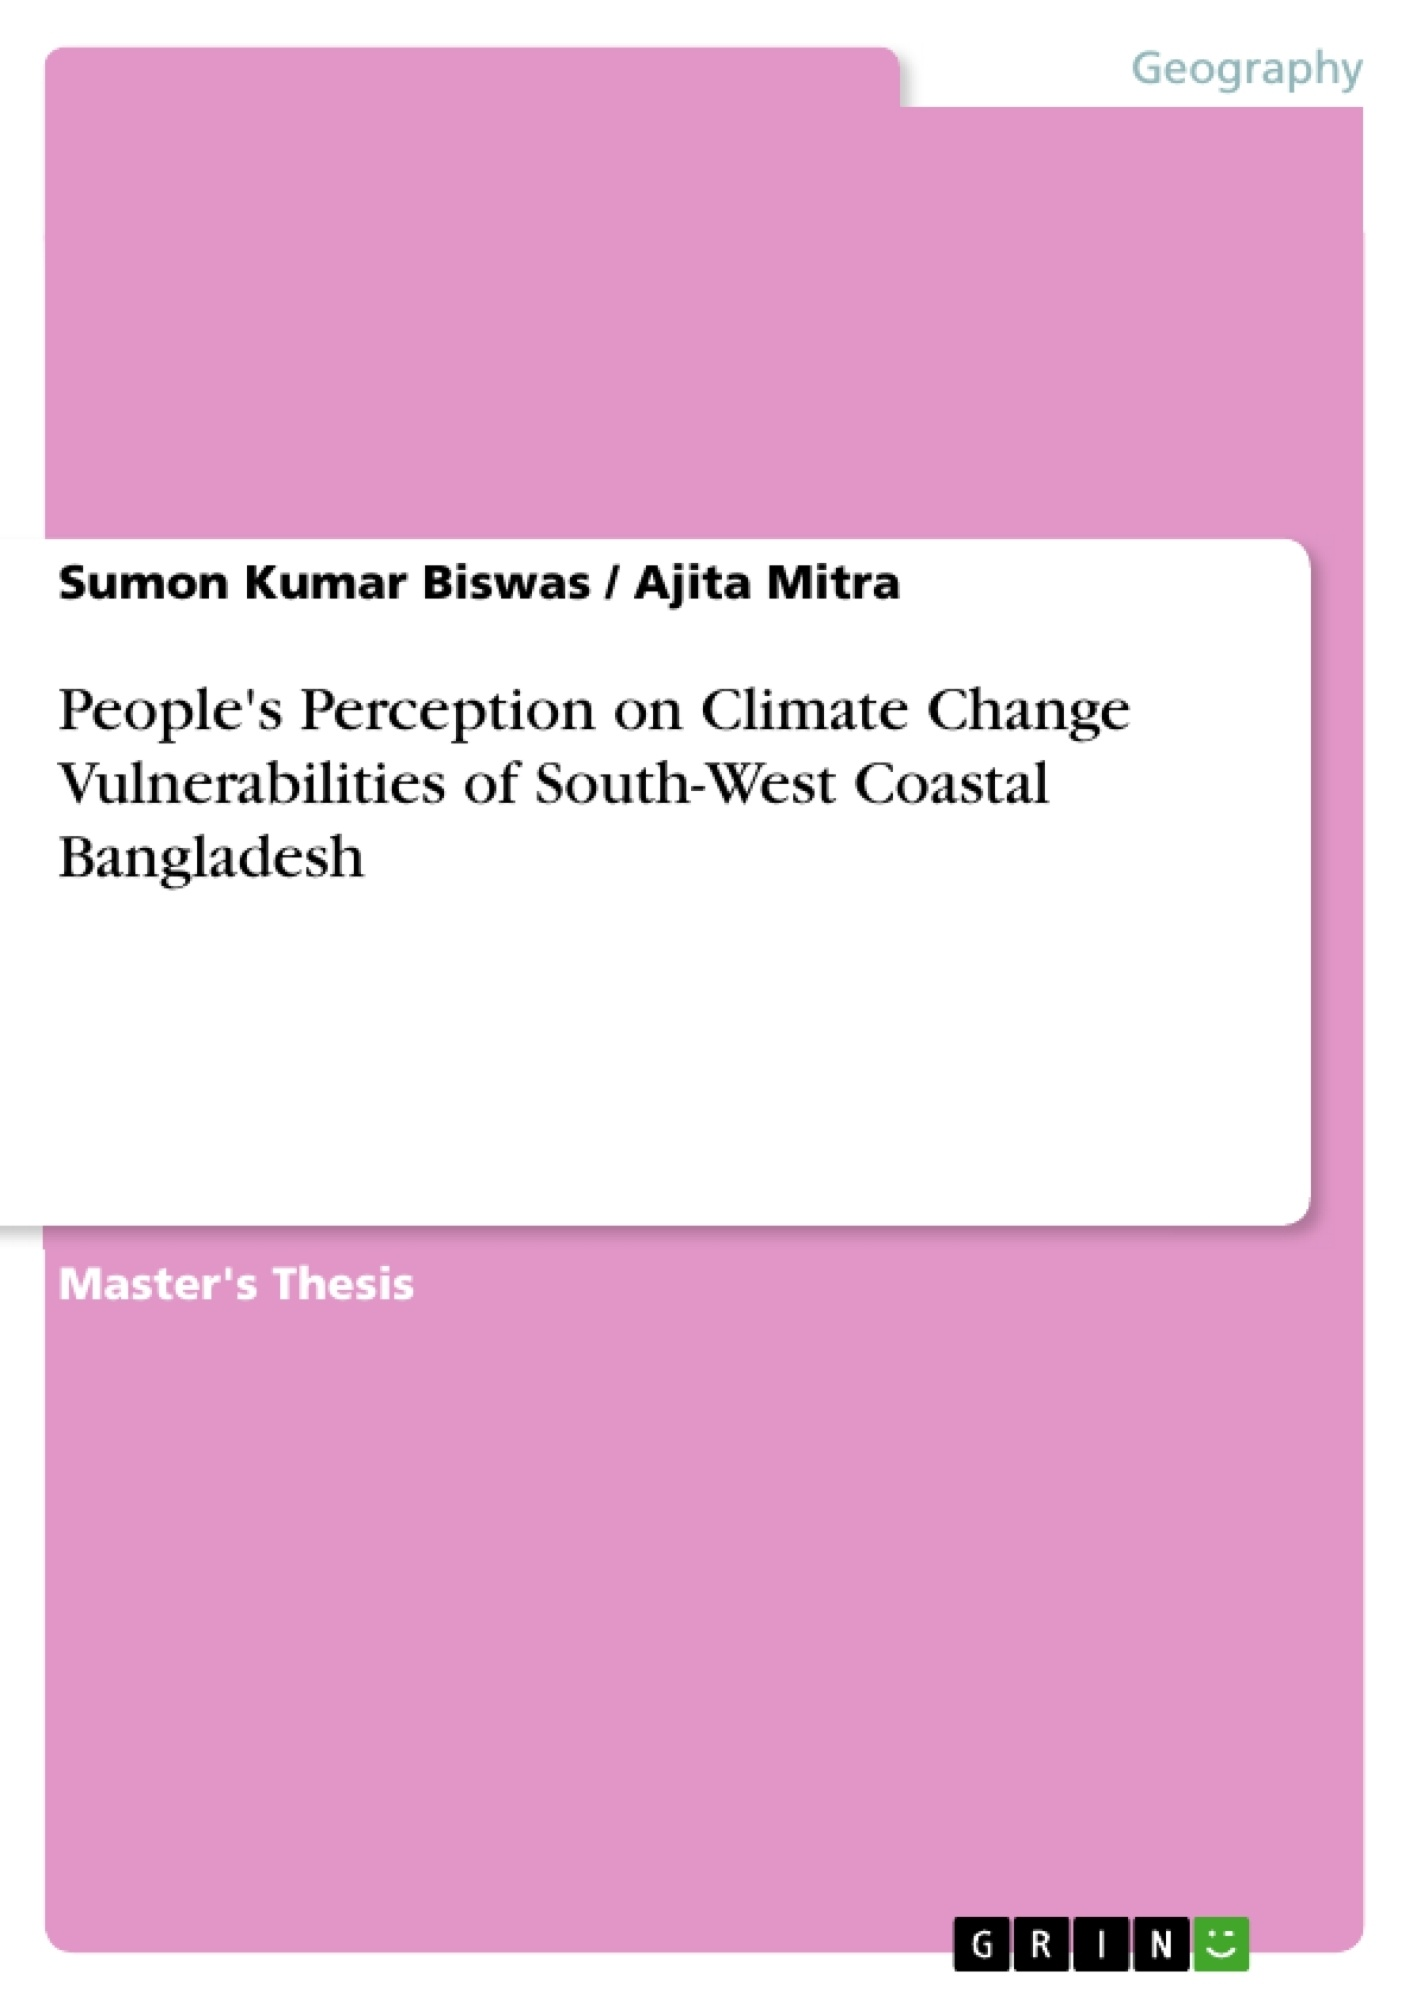 Title: People's Perception on Climate Change Vulnerabilities of South-West Coastal Bangladesh